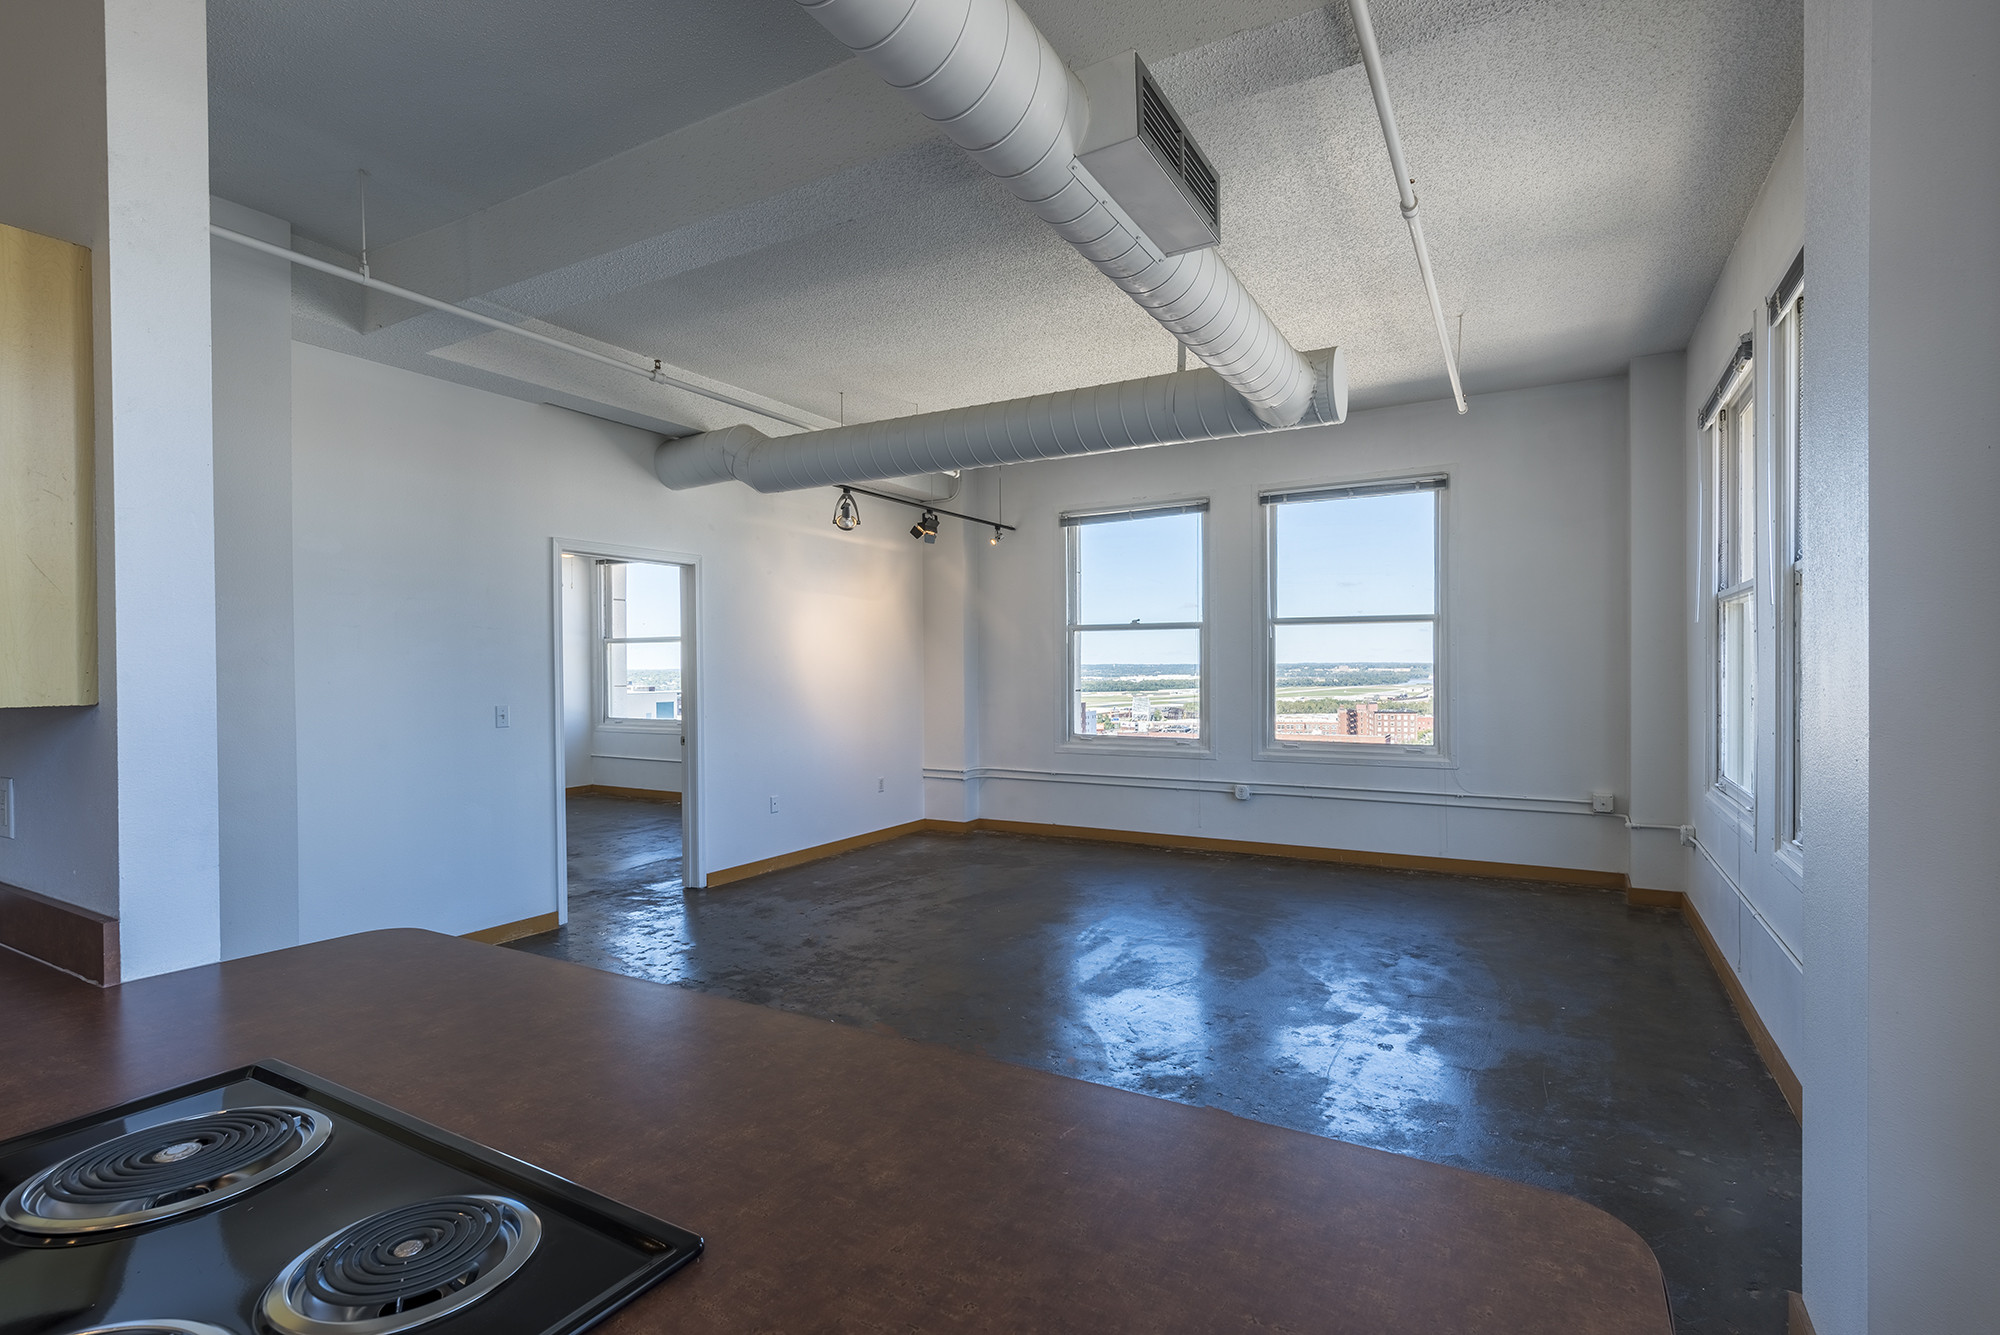 hardwood flooring kansas city mo of featured for rent board of trade 1405 kansas city lofts condos in board of trade 1405 gallery